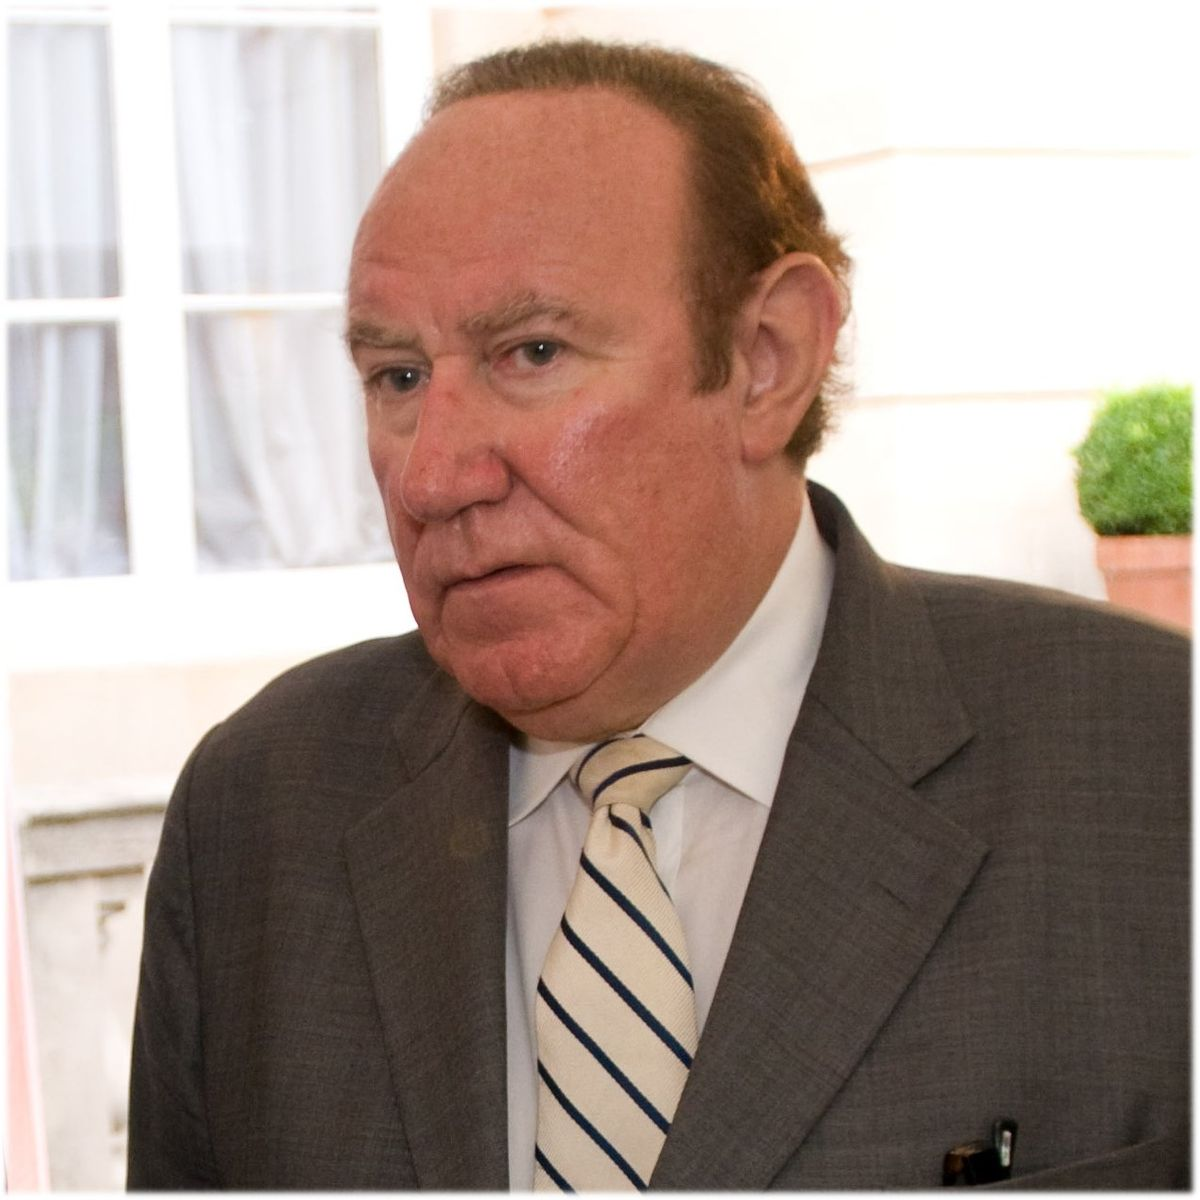 andrew neil - photo #1